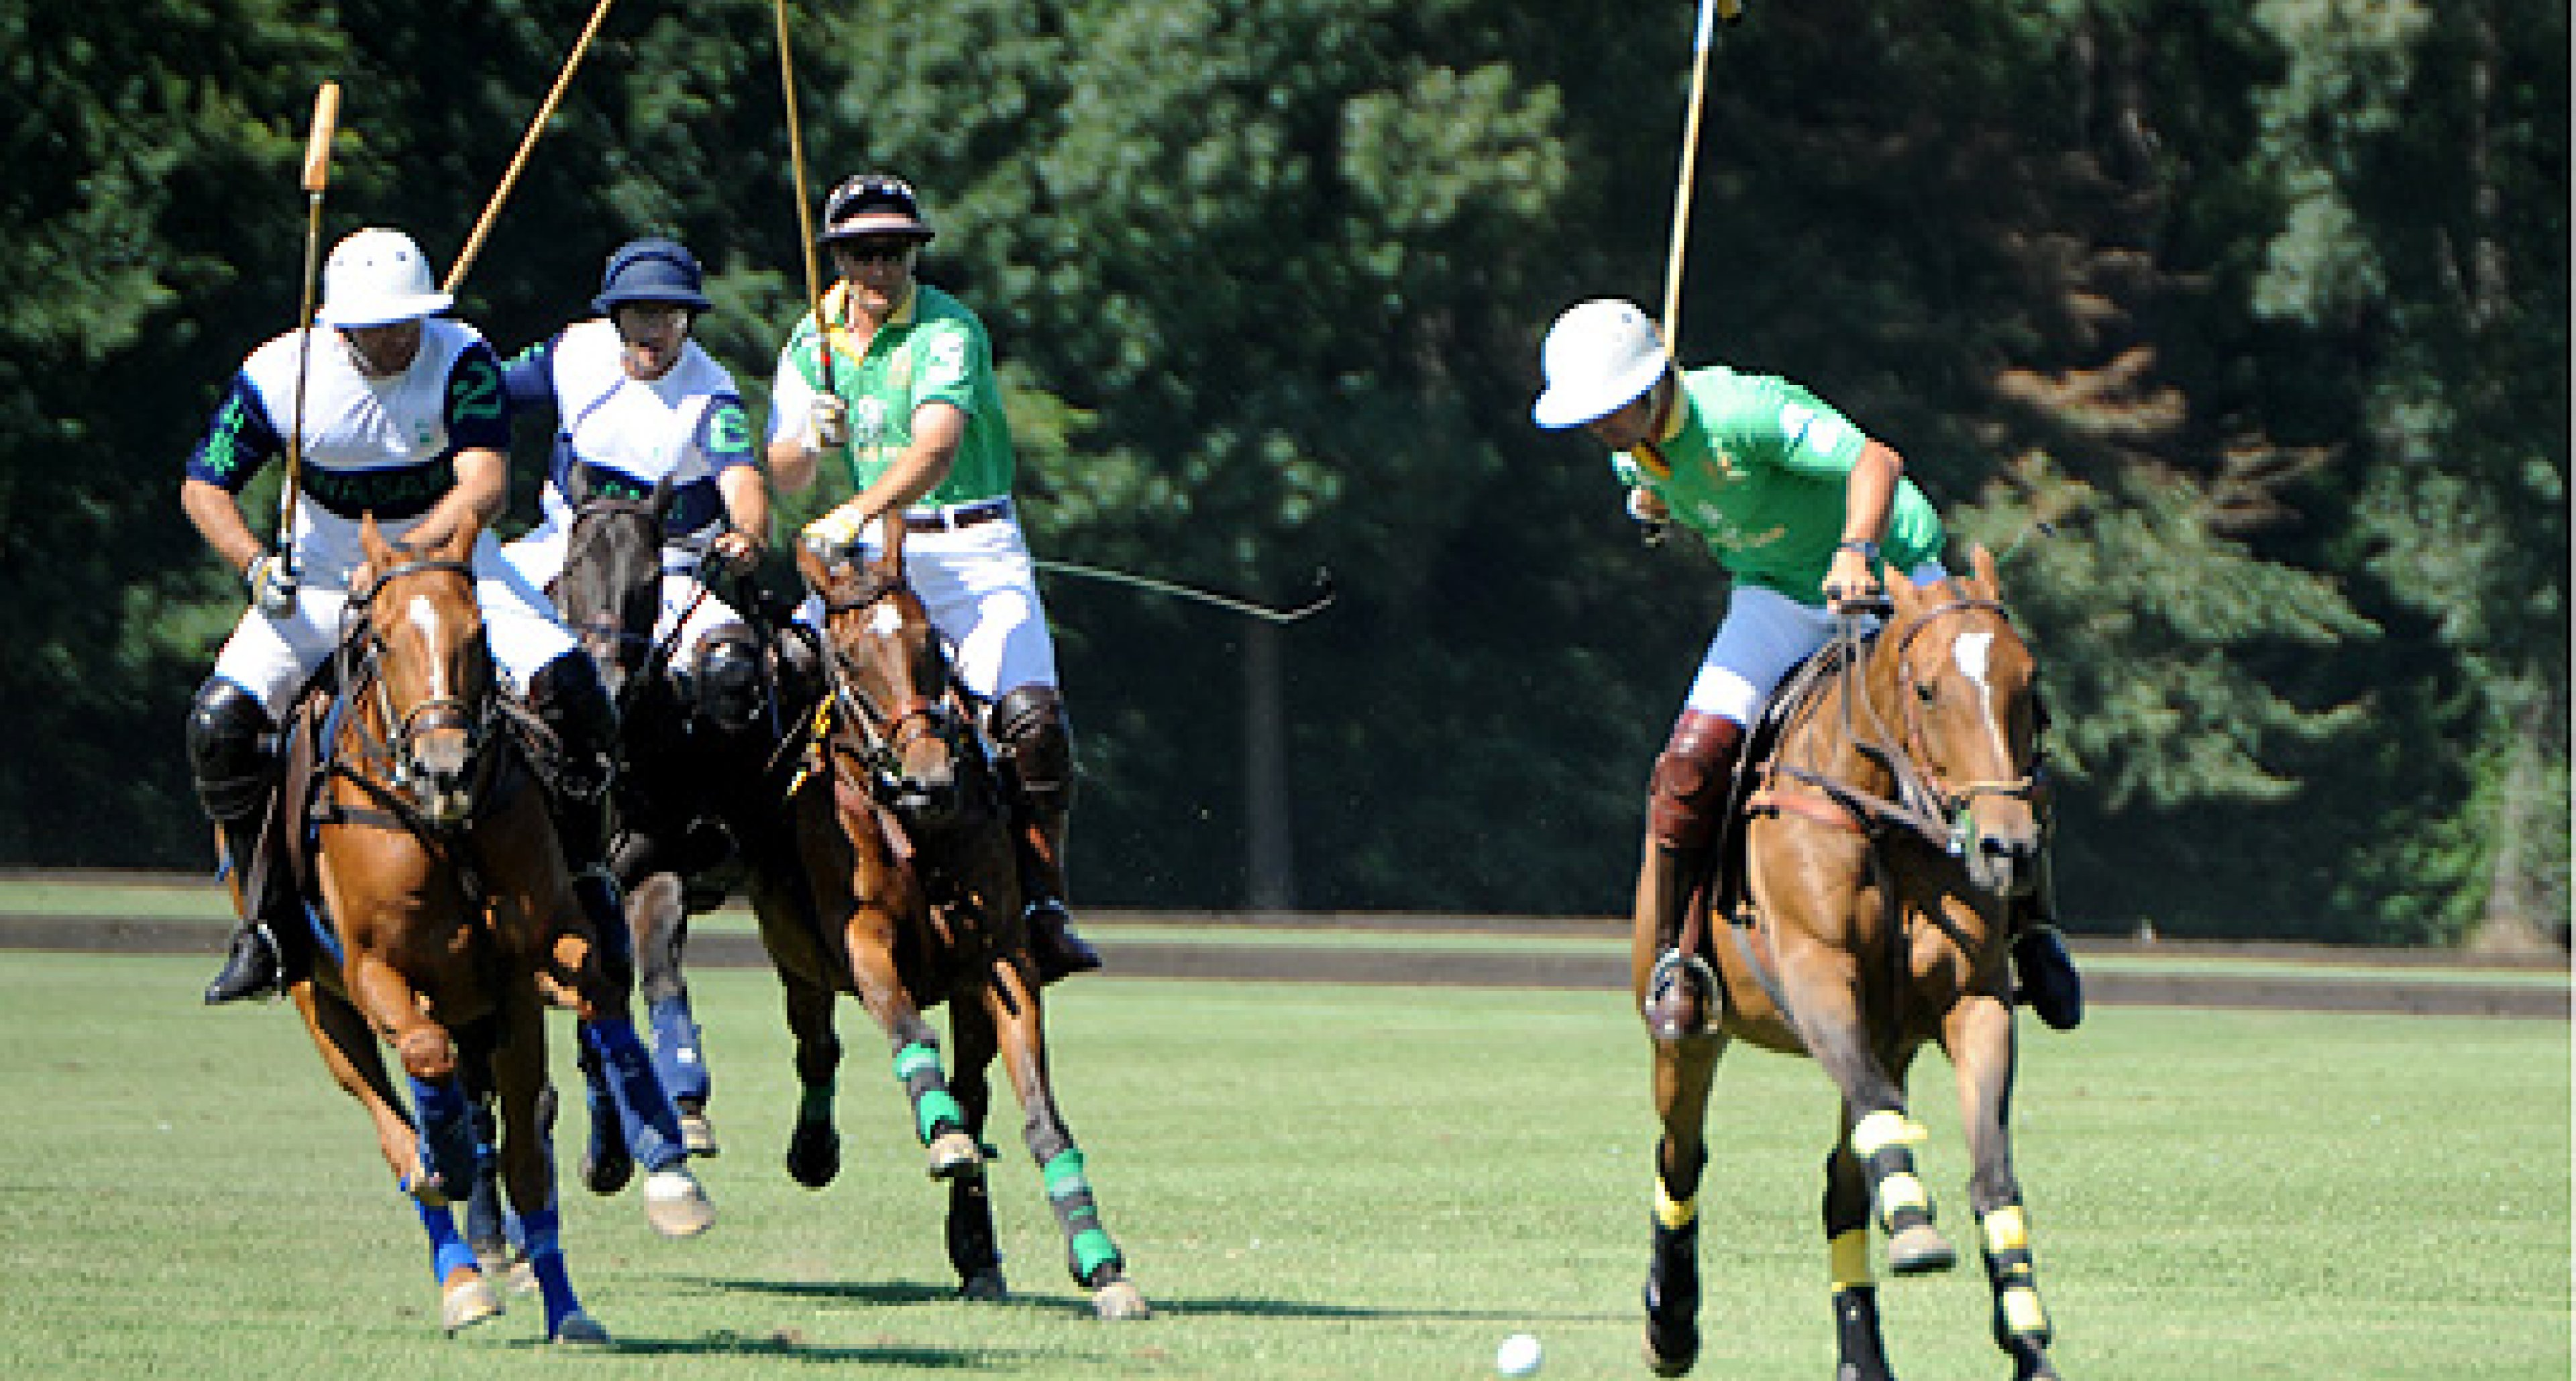 Int. Polo Cup St. Tropez 2009: Victory for Pakistan